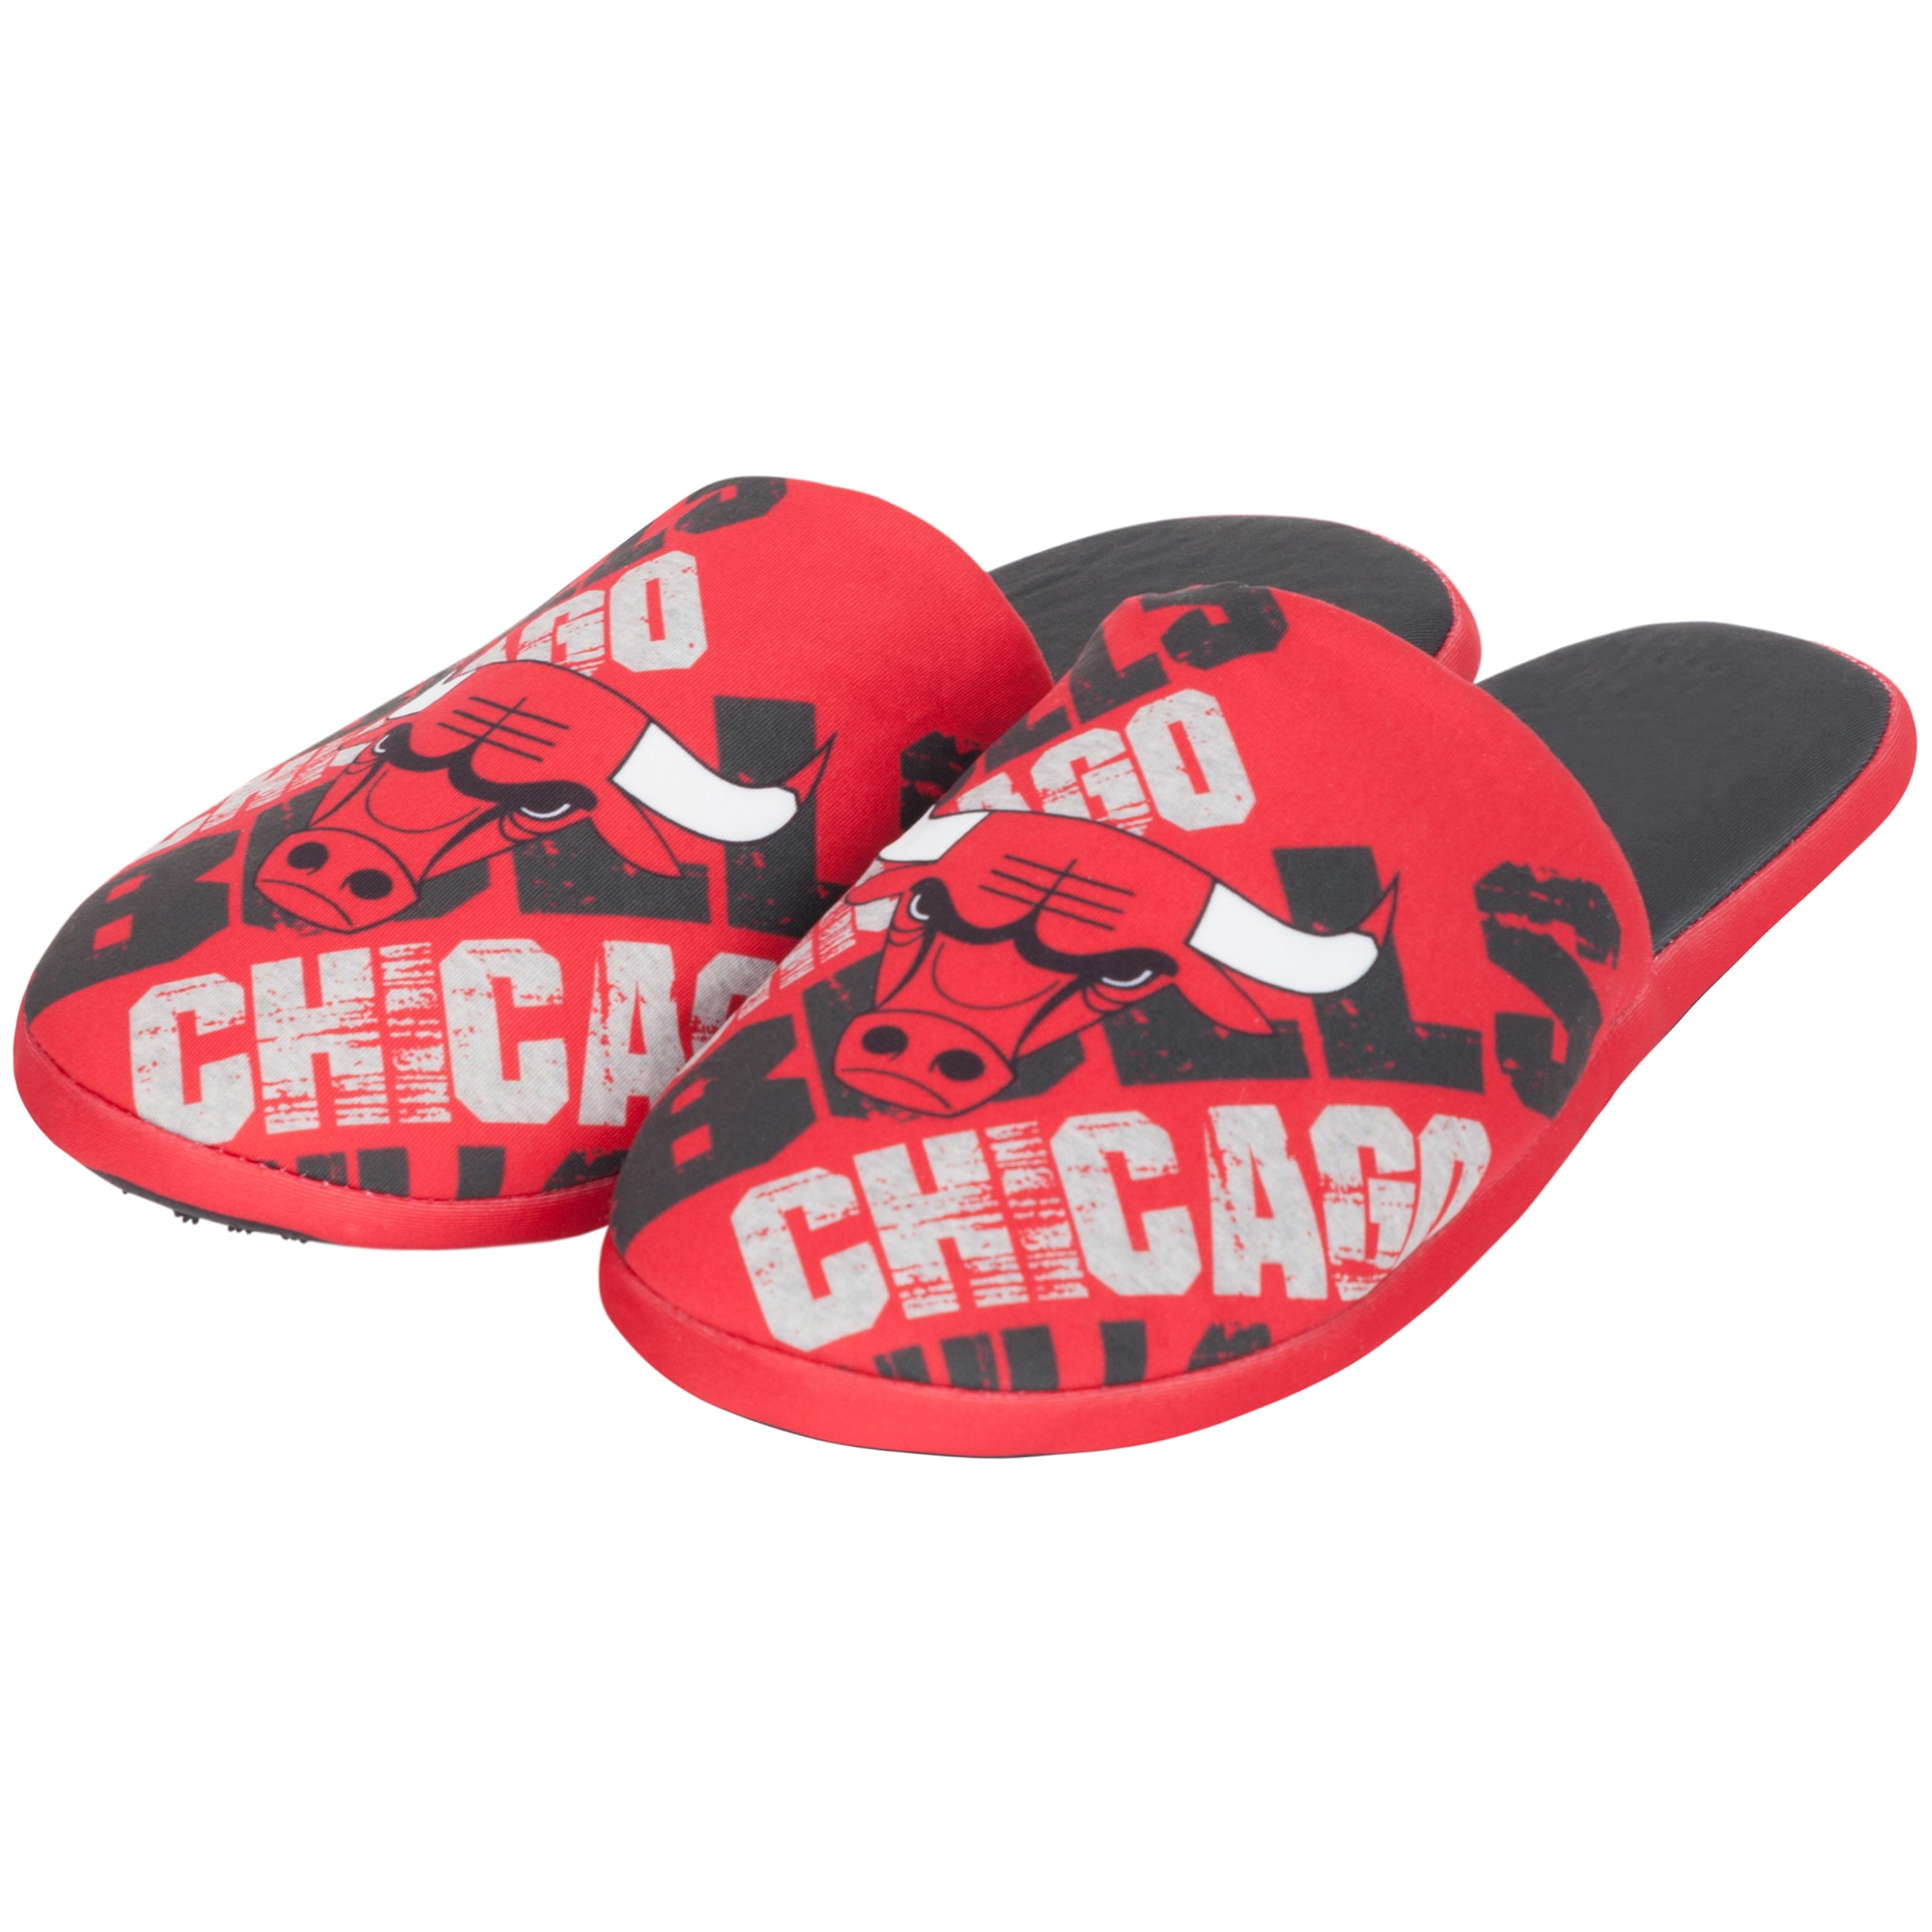 Chicago Bulls Digital Print Slippers - Red